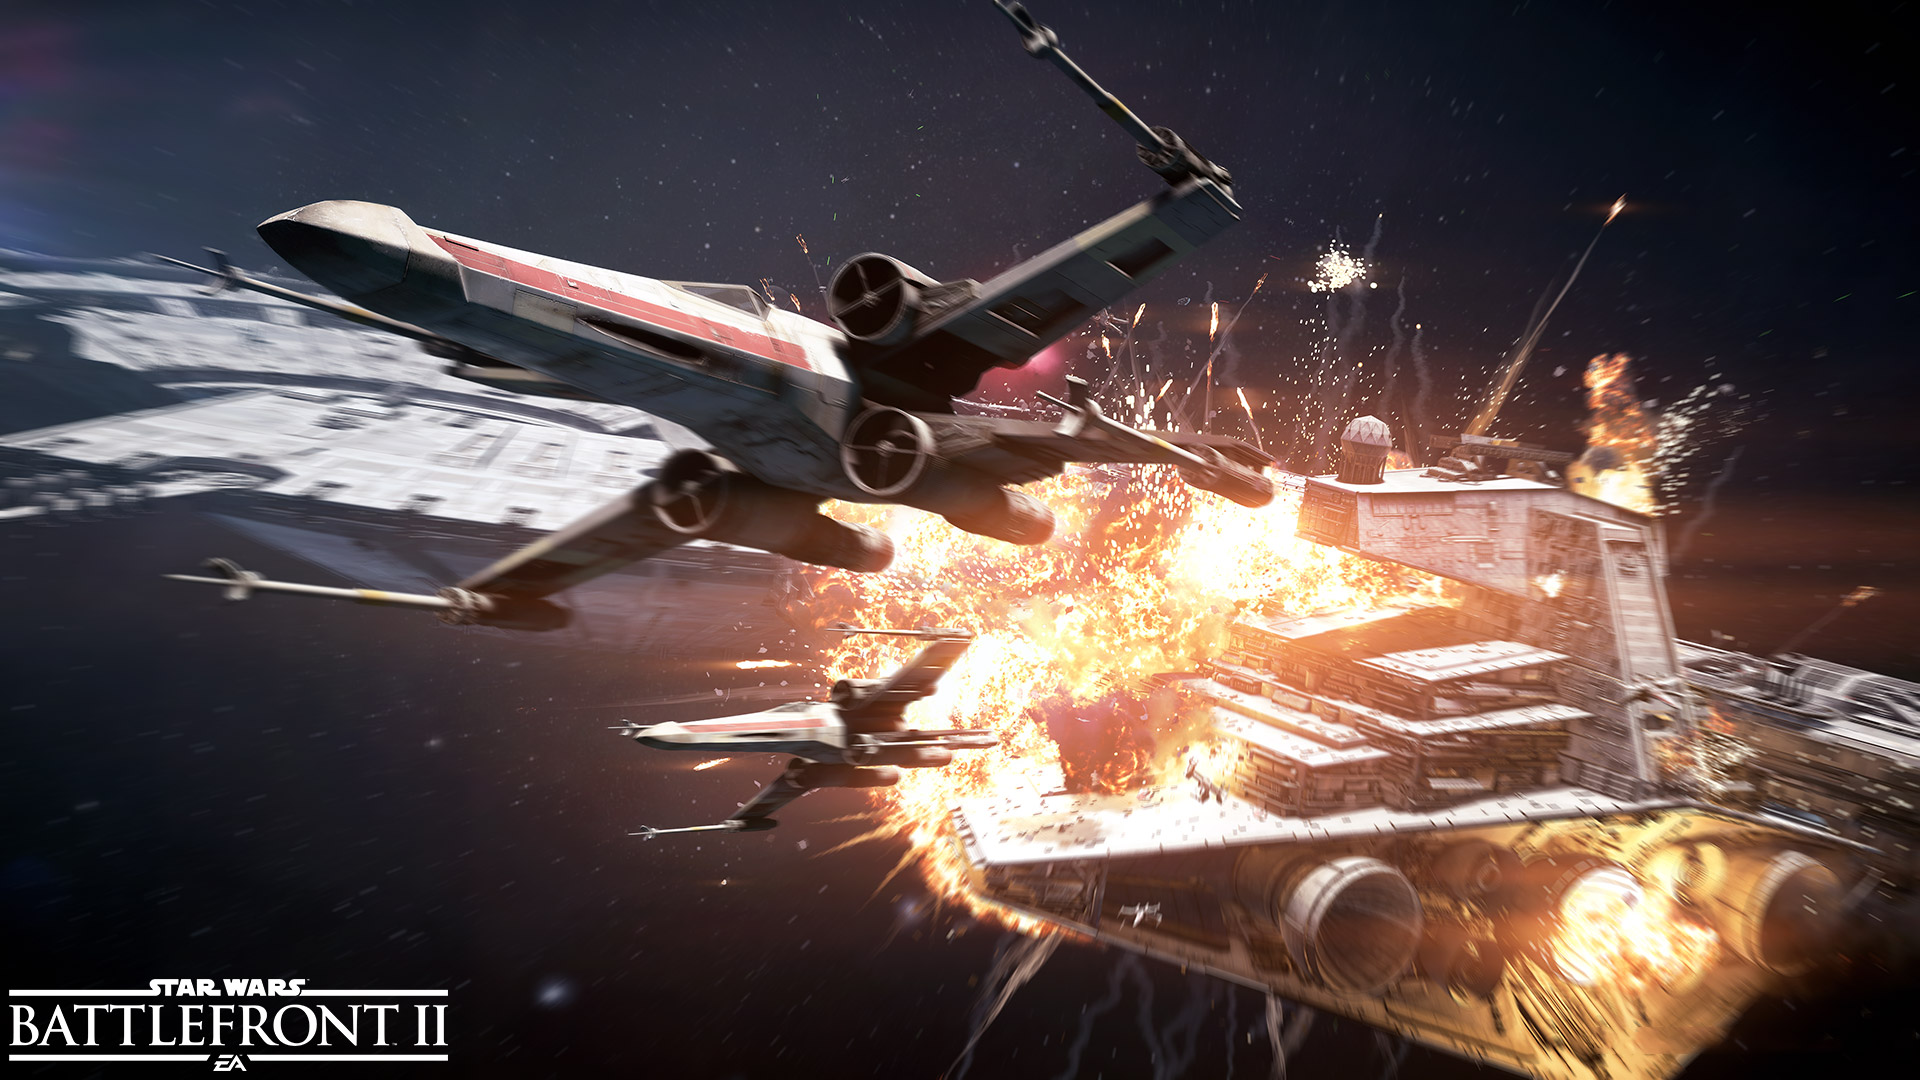 Star Wars Battlefront 2 Wallpaper 7 Wallpapersbq